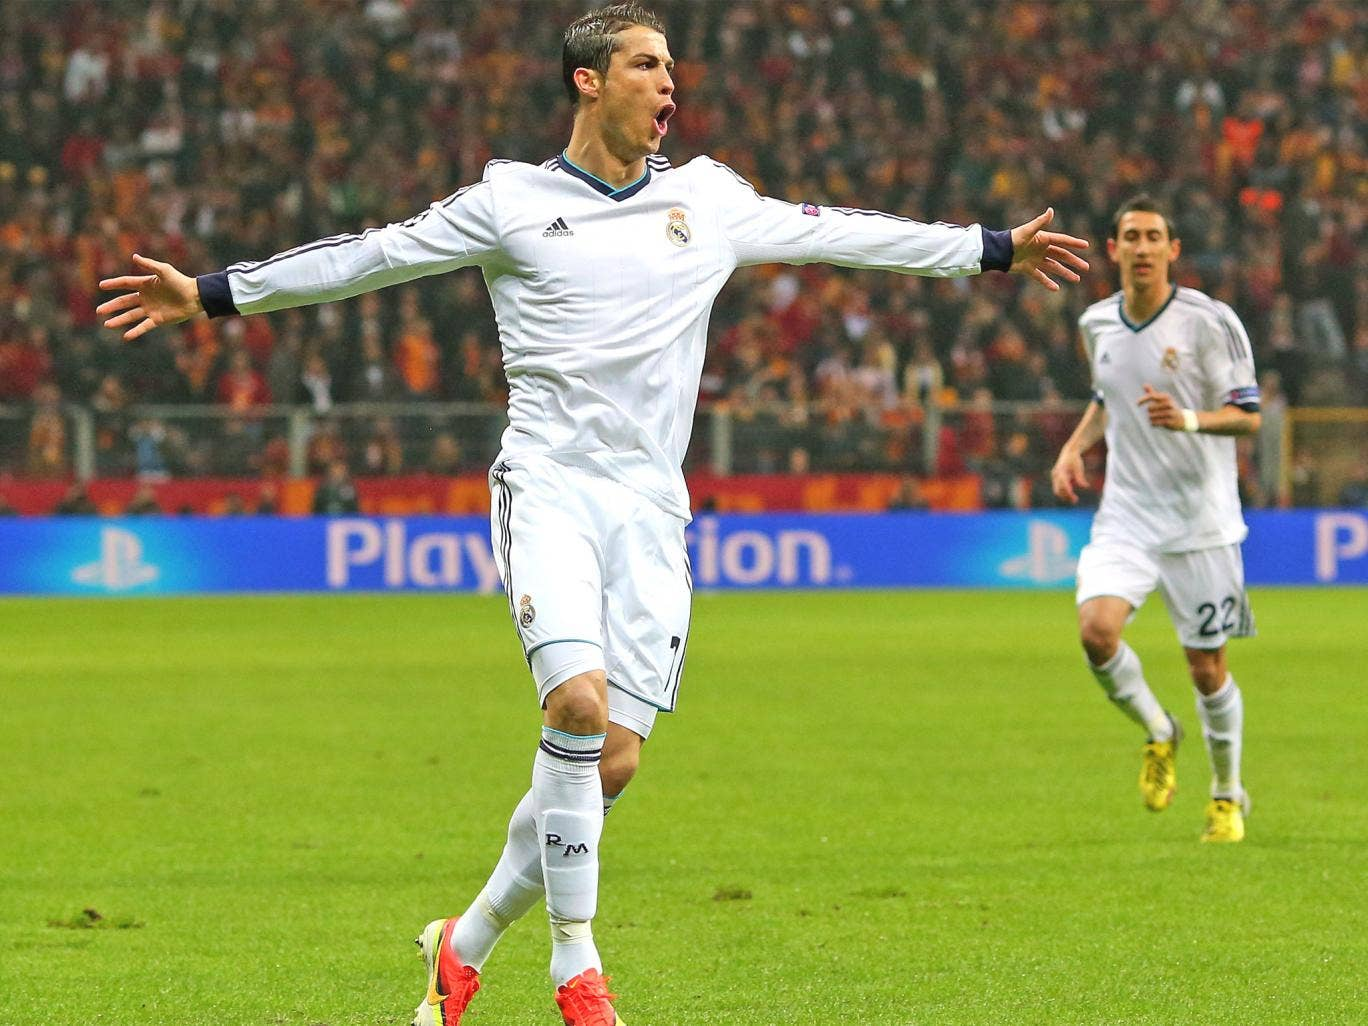 Ronaldo's early goal put the tie beyond Galatasaray even though the Turkish went on to win Wednesday's second leg